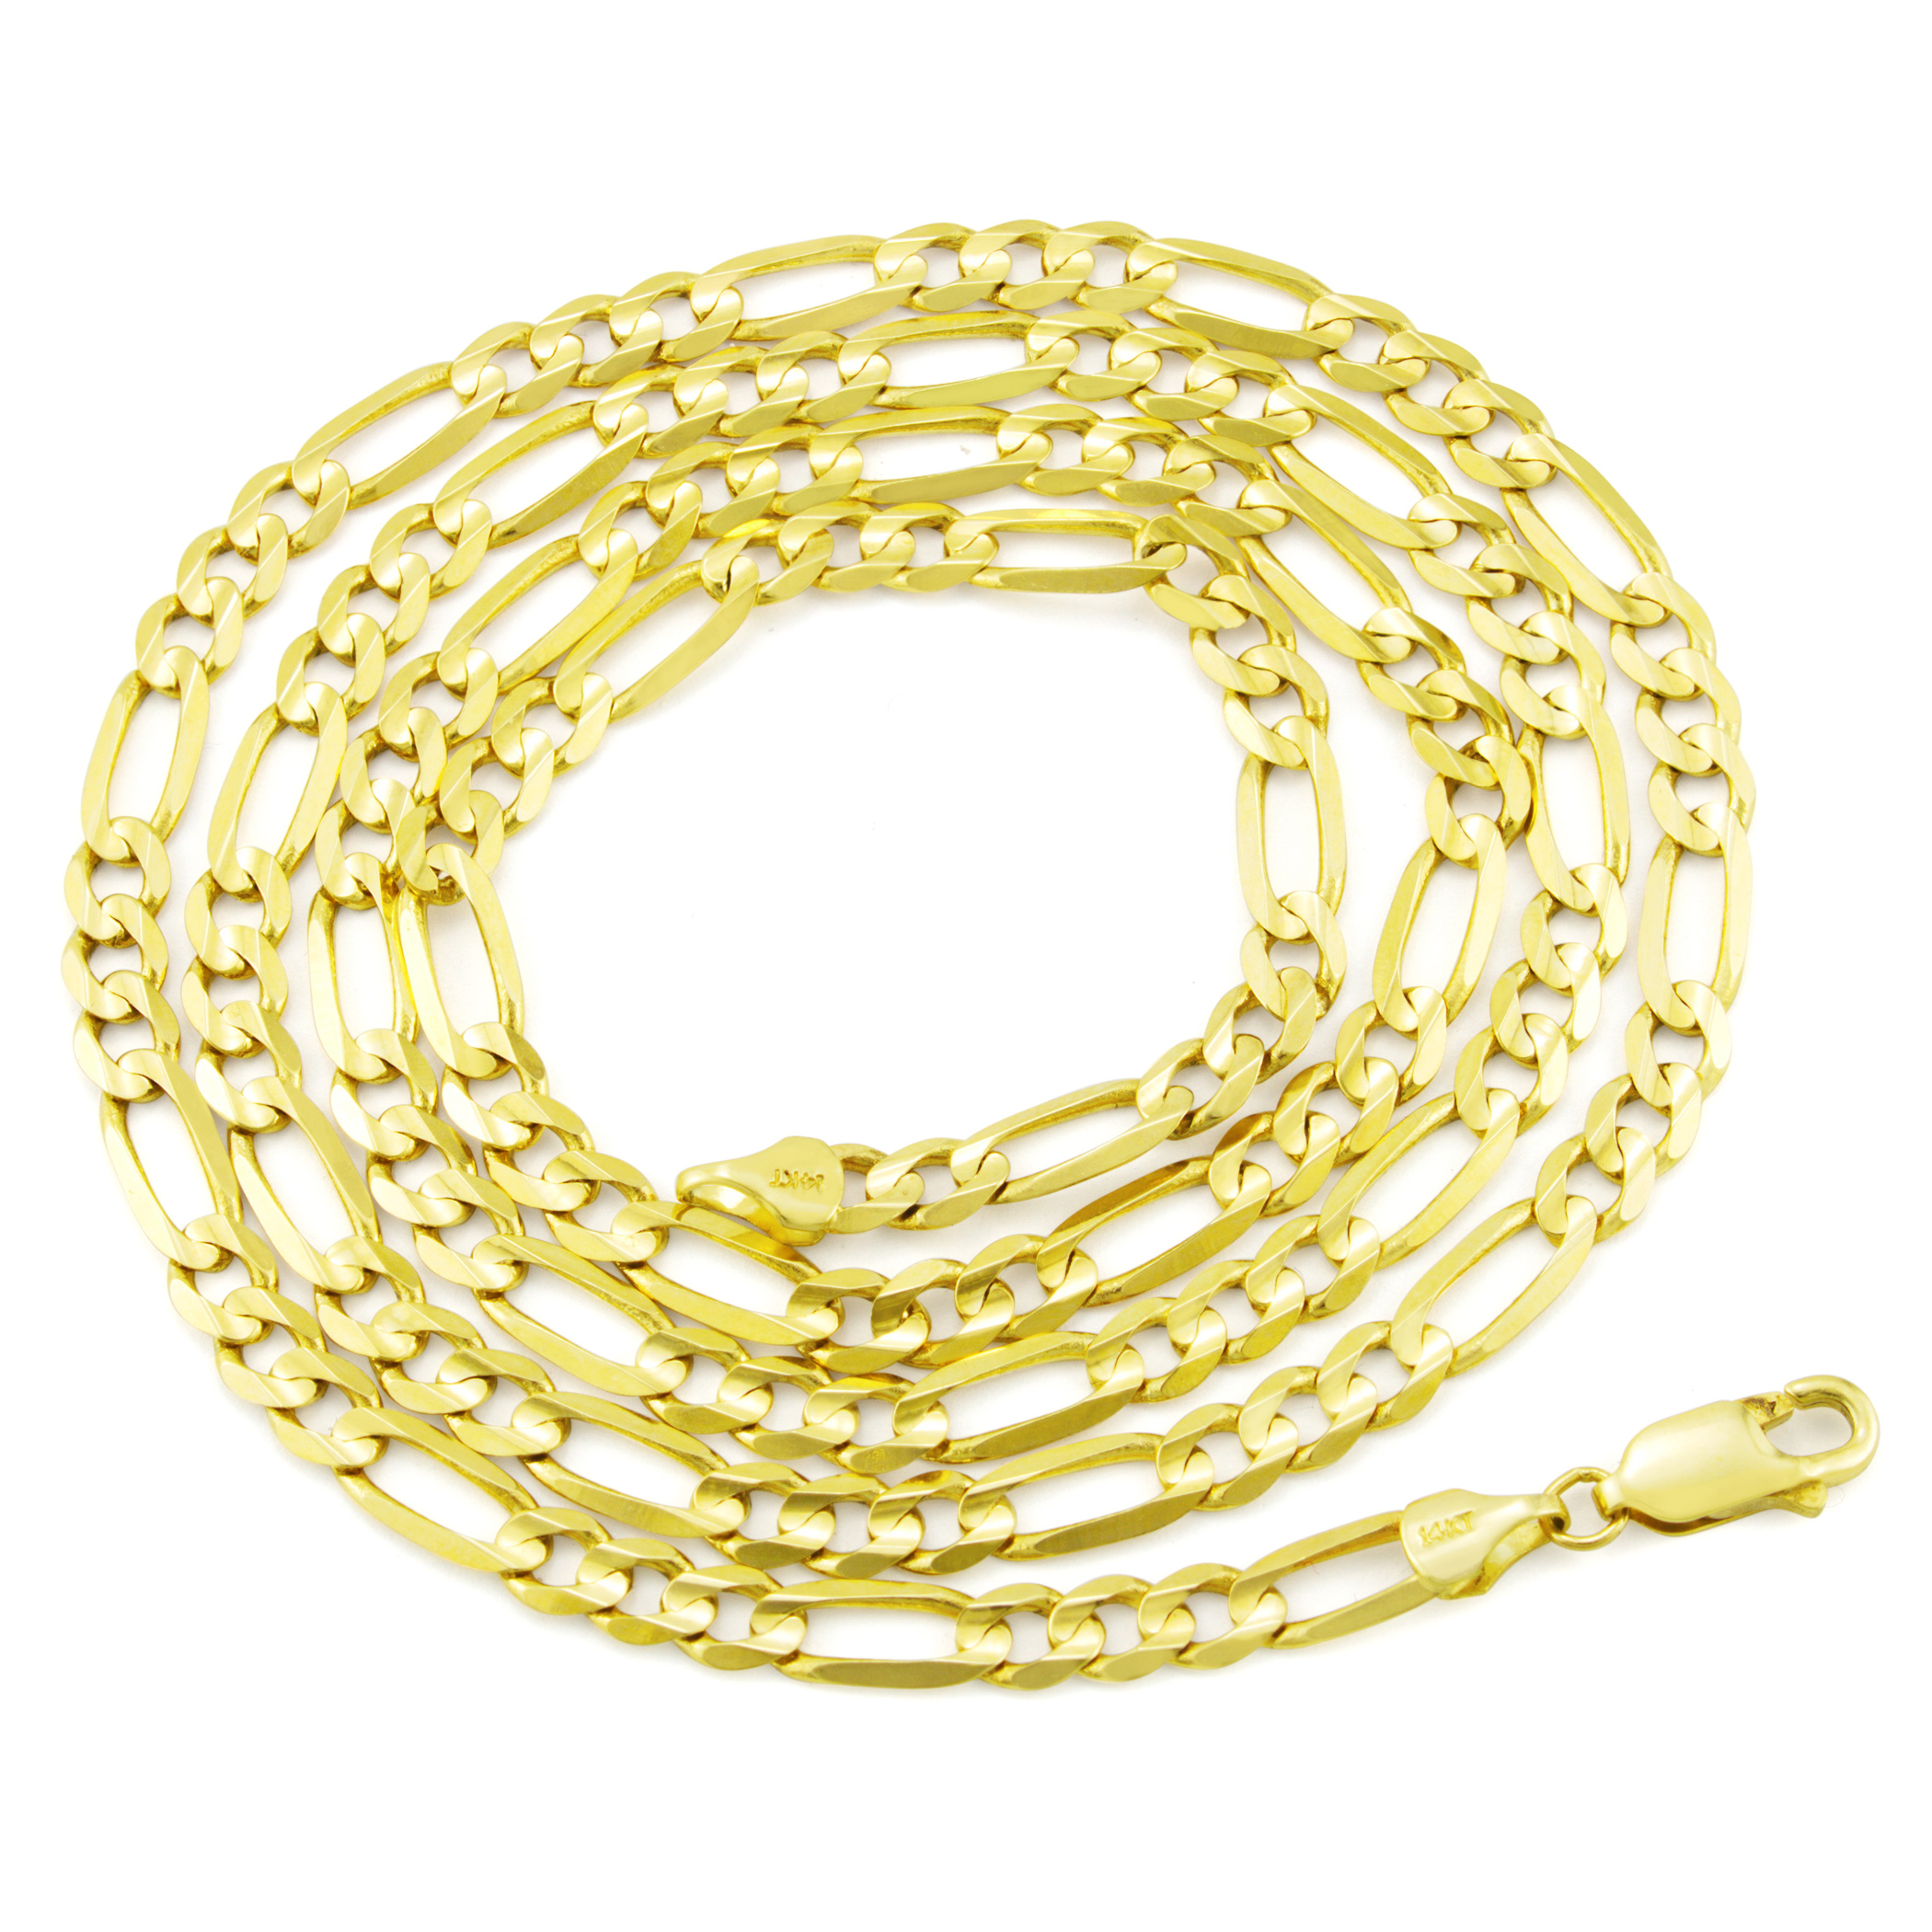 14K-Yellow-Gold-5-5mm-Italian-Figaro-Chain-Link-Bracelet-Mens-Women-7-034-8-034-9-034 thumbnail 23